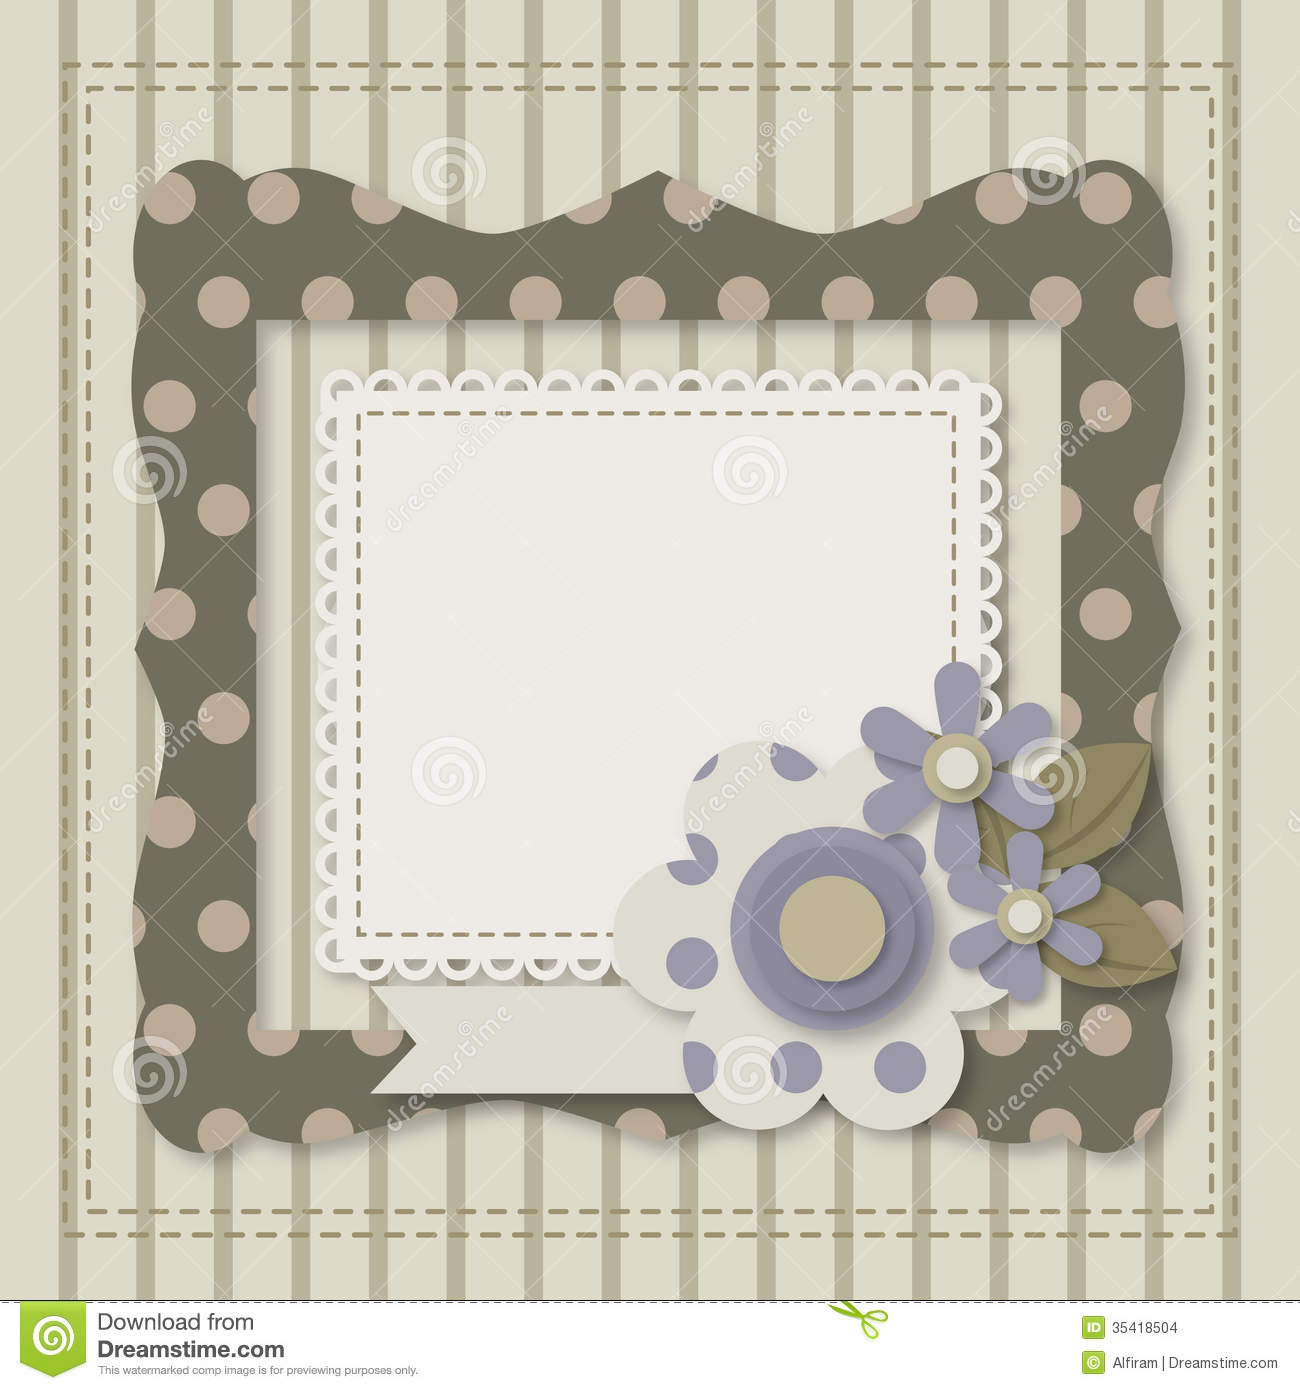 Template Of Greeting Card Stock Images - Image: 35418504